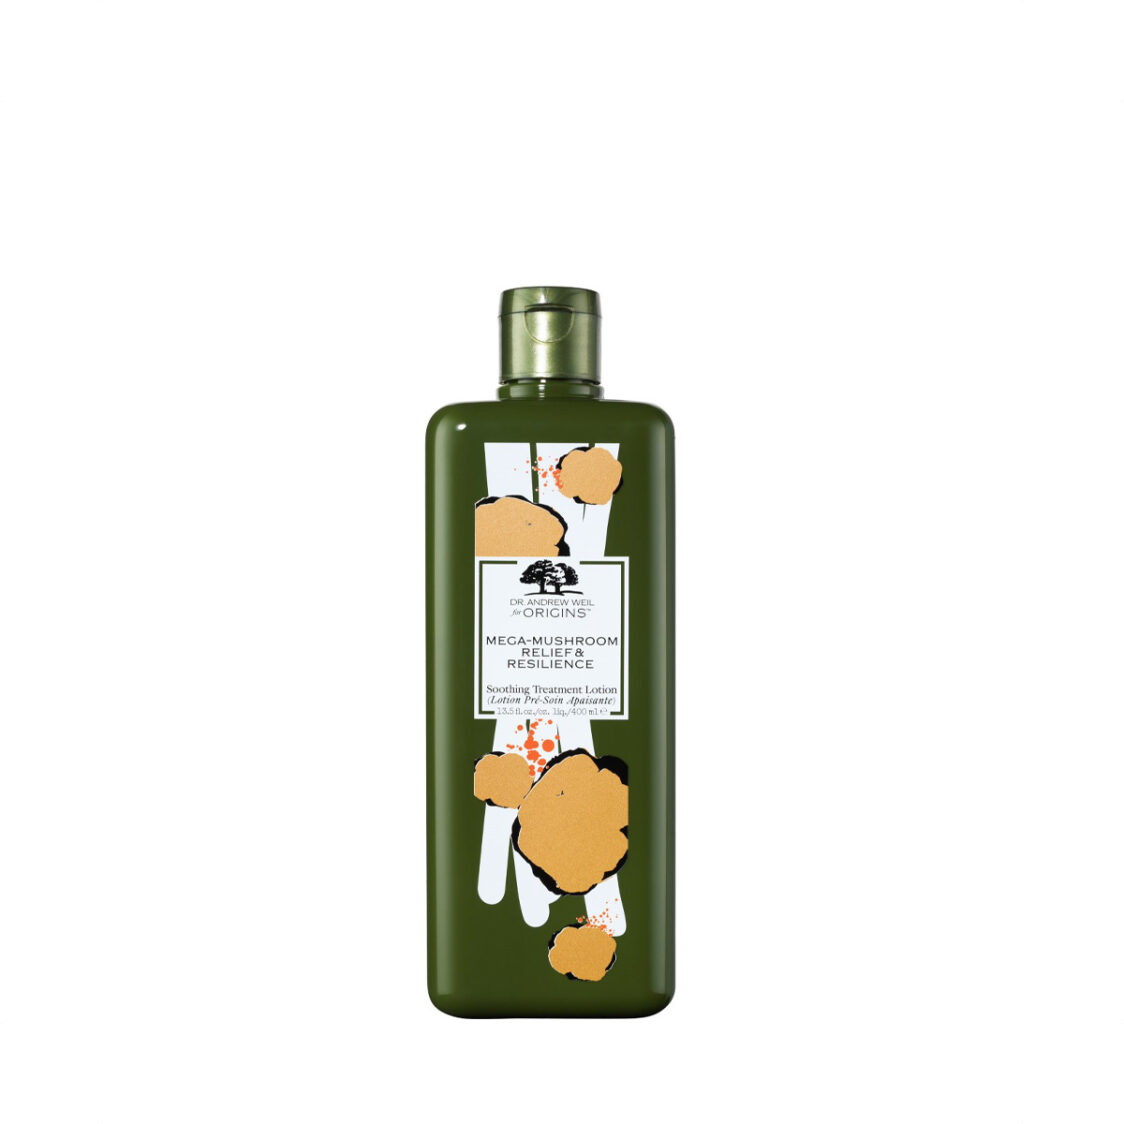 Origins Limited Edition Dr Andrew Weil for Origins Mega-Mushroom Relief  Resilience Soothing Treatment Lotion 400ml